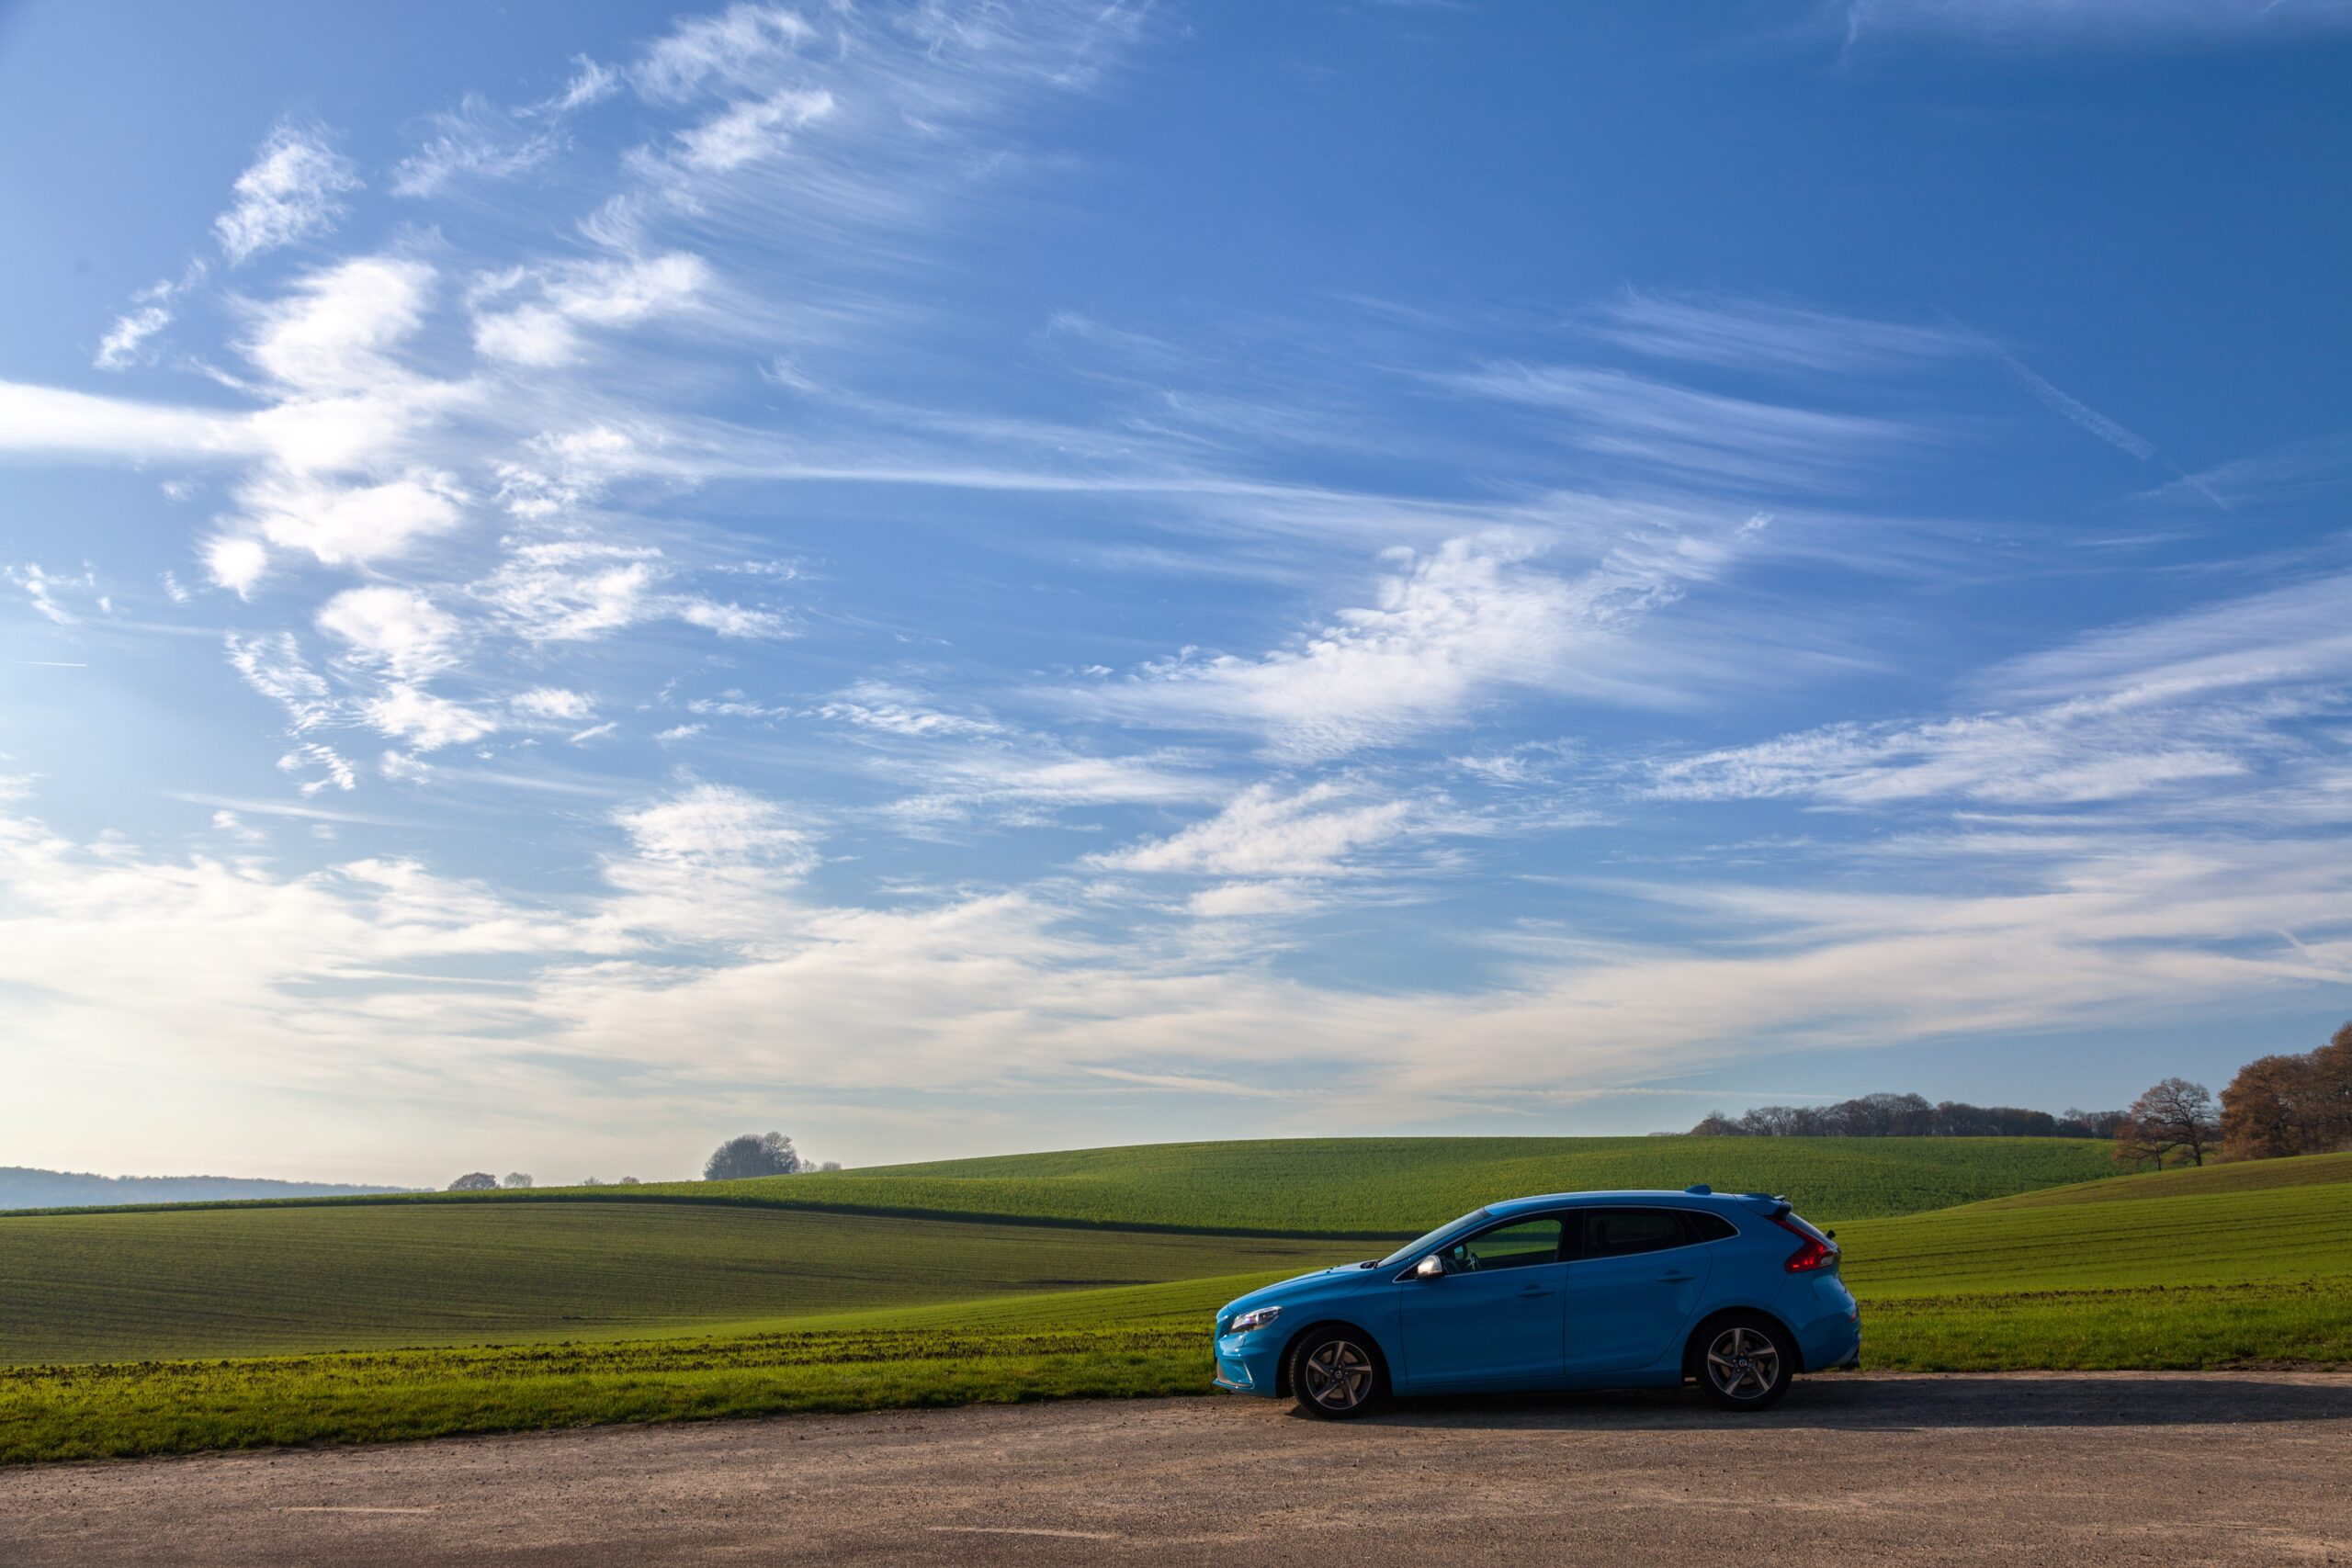 car on a road with a beautiful blue sky